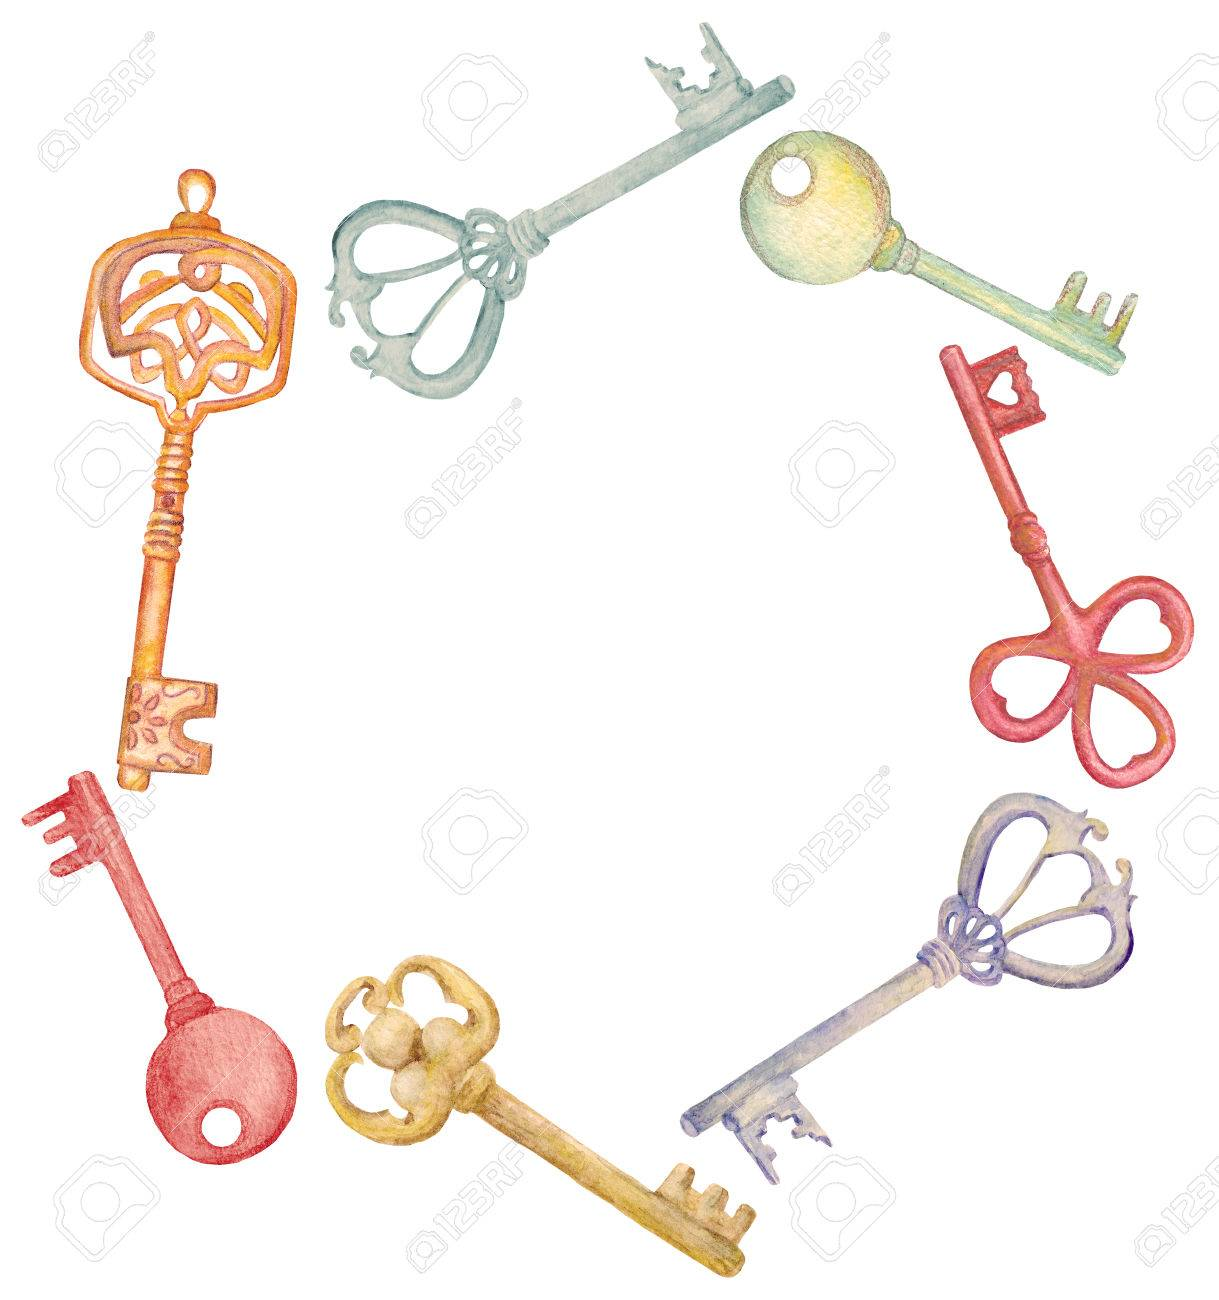 Watercolor Key Set Hand Drawn Collection Design For House